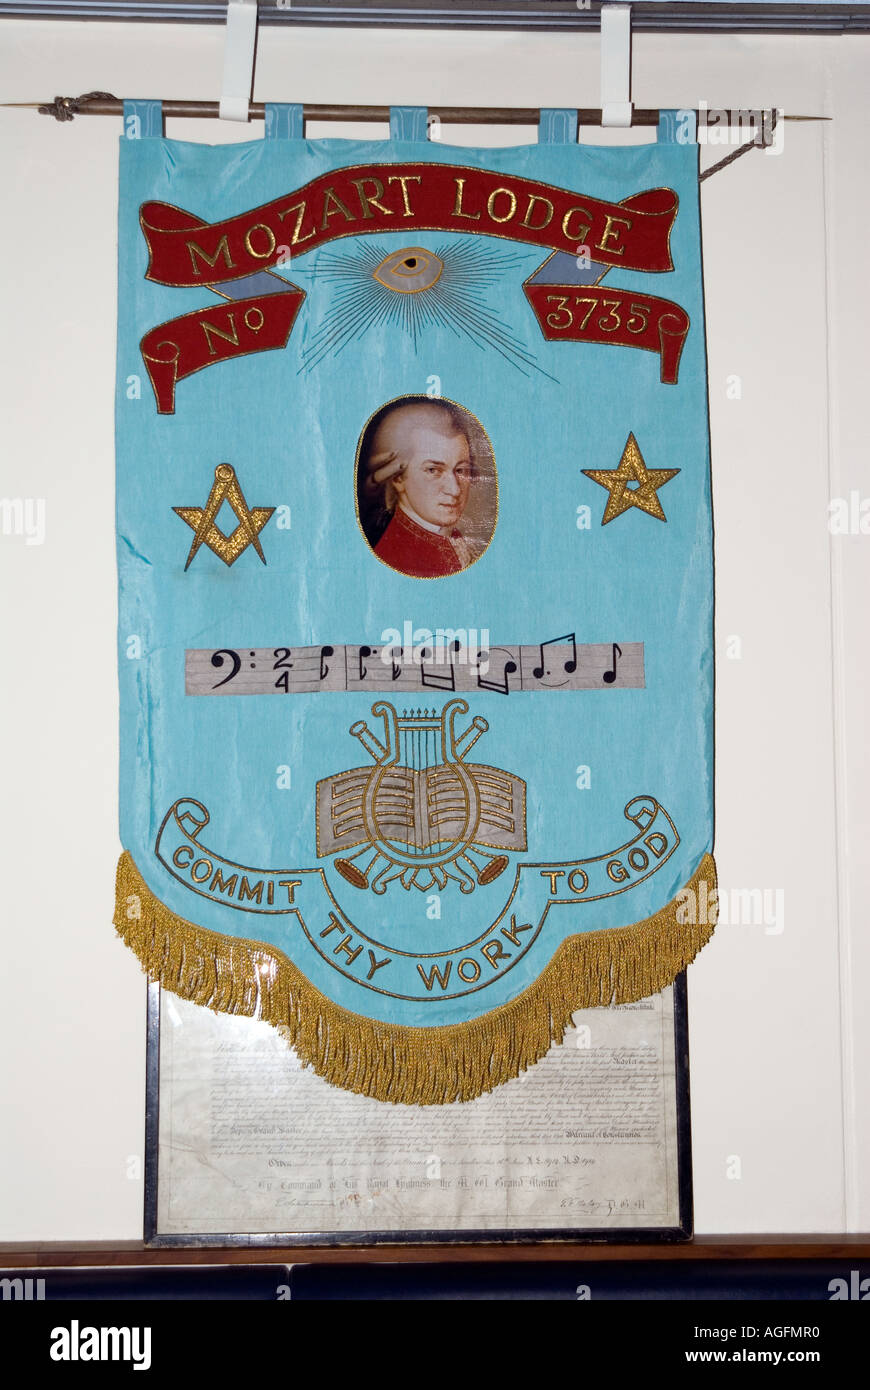 Banner Inside a masonic lodge Mozart Lodge No 373 commit thy work to God - Stock Image